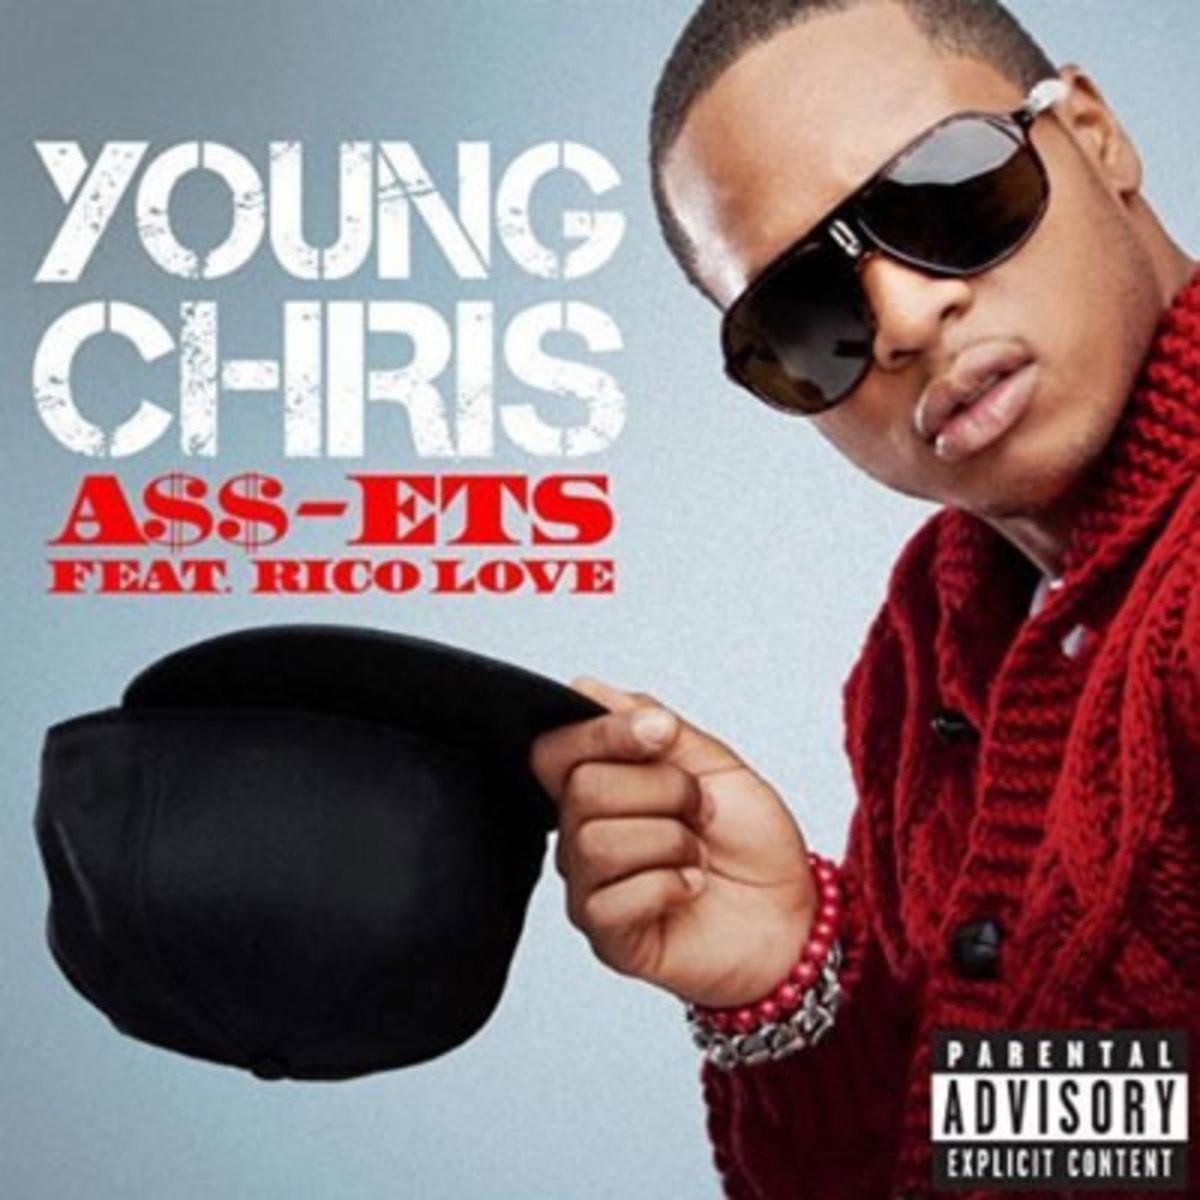 youngchris-assets.jpg